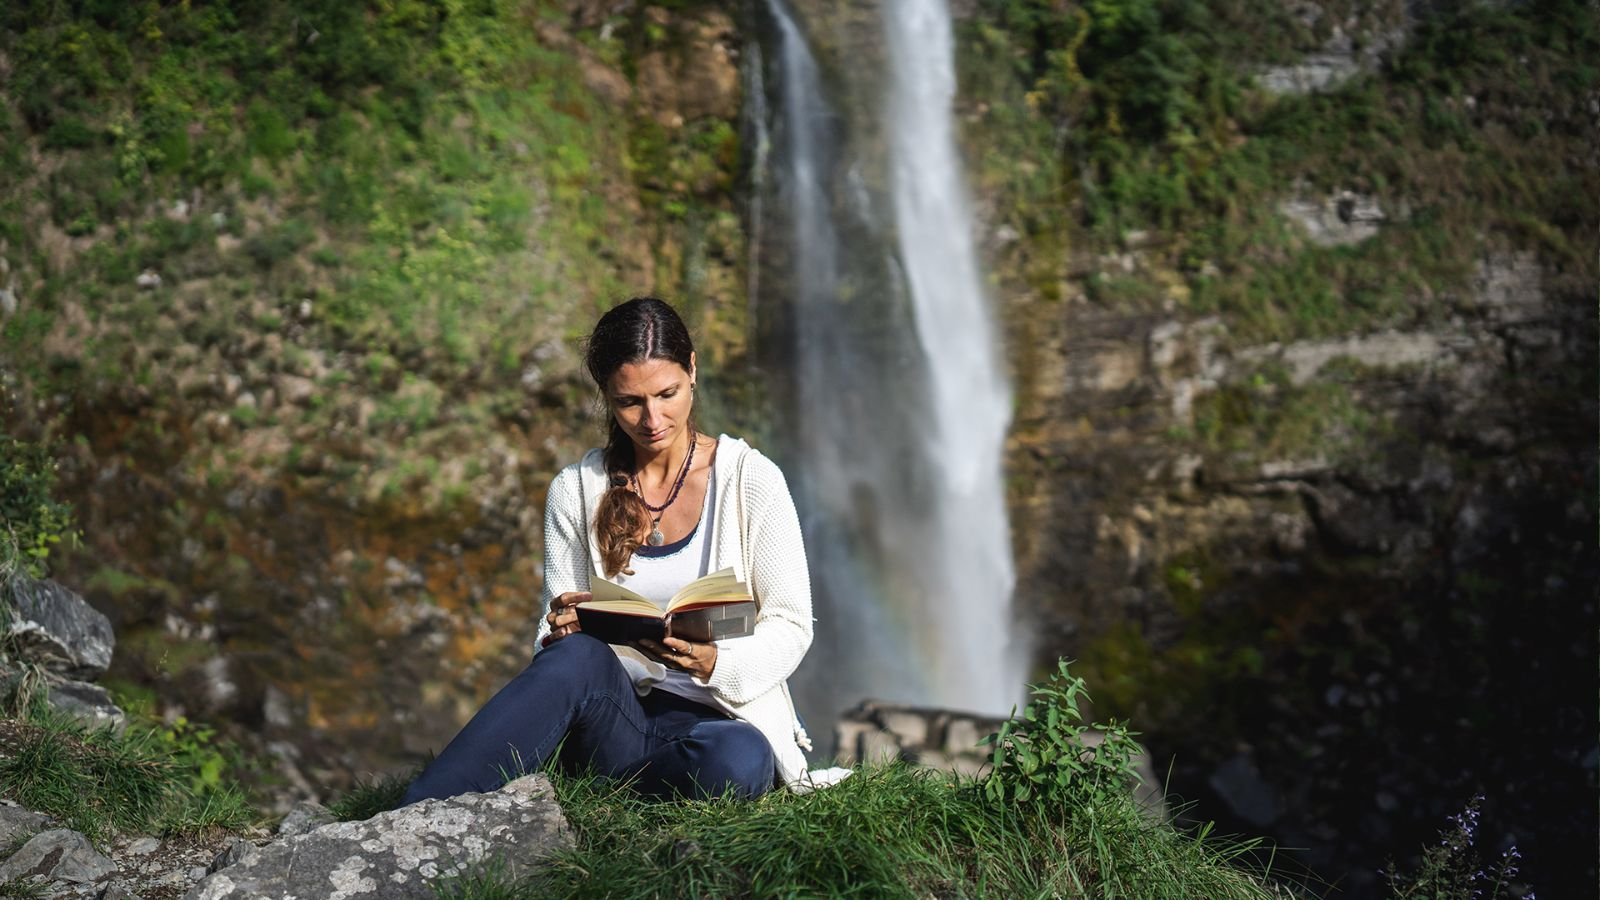 A moment to read and relax at the Botto waterfall